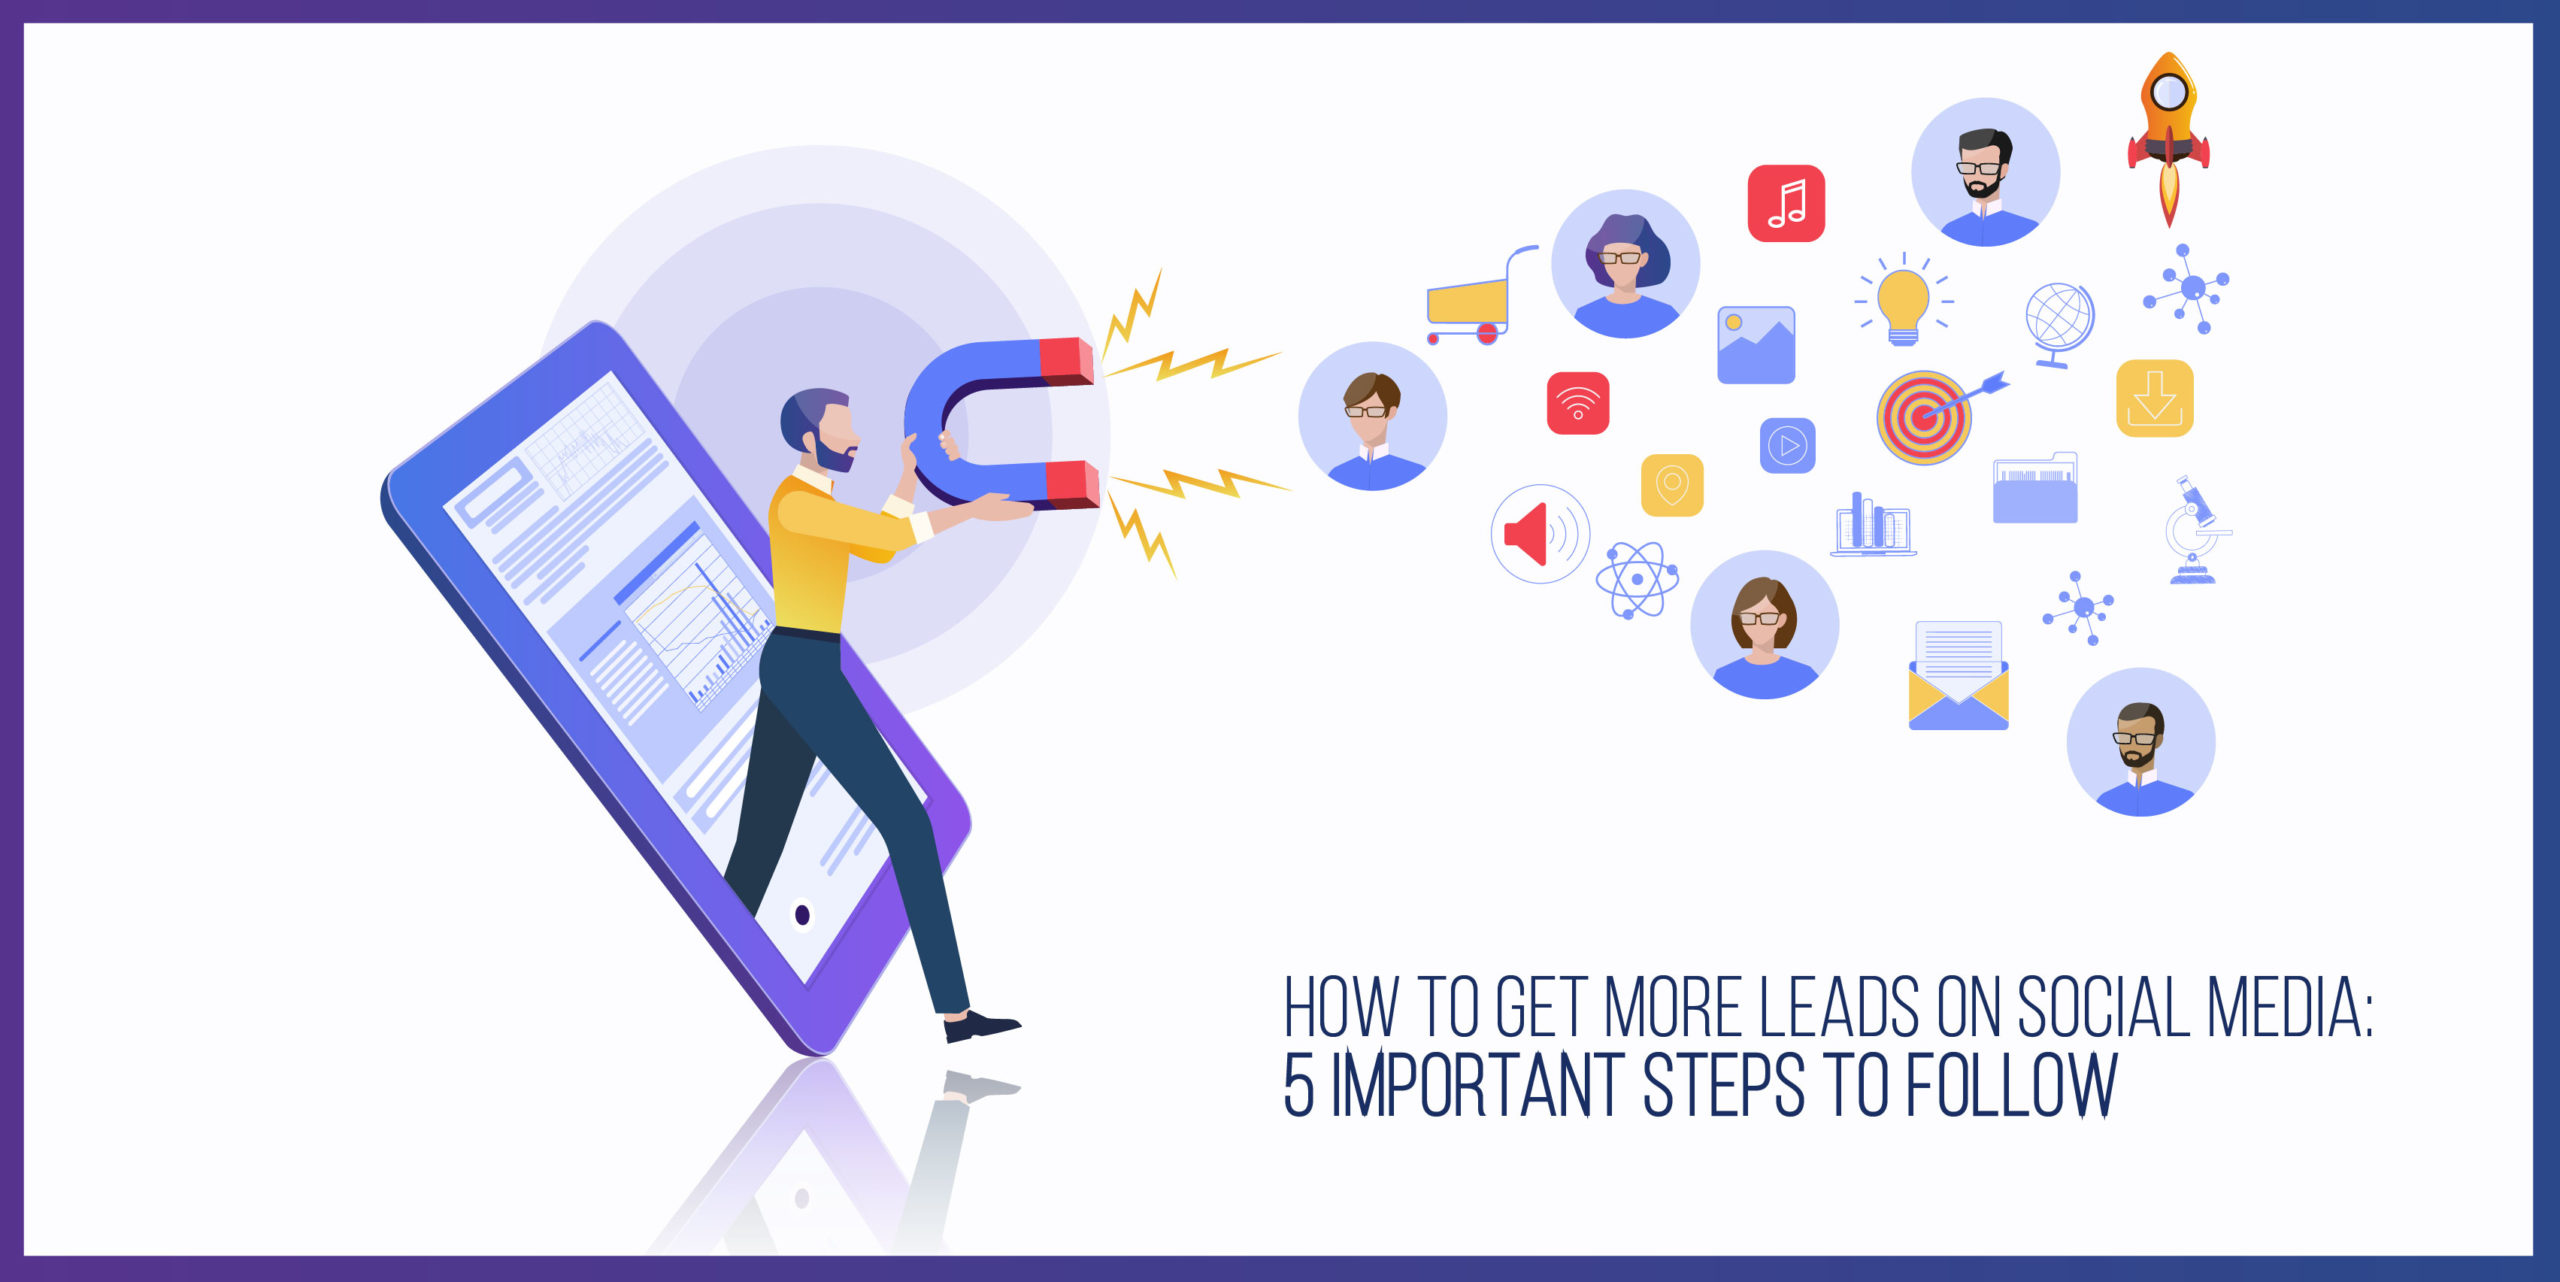 How to get more leads on Social Media: 5 Important steps to follow.